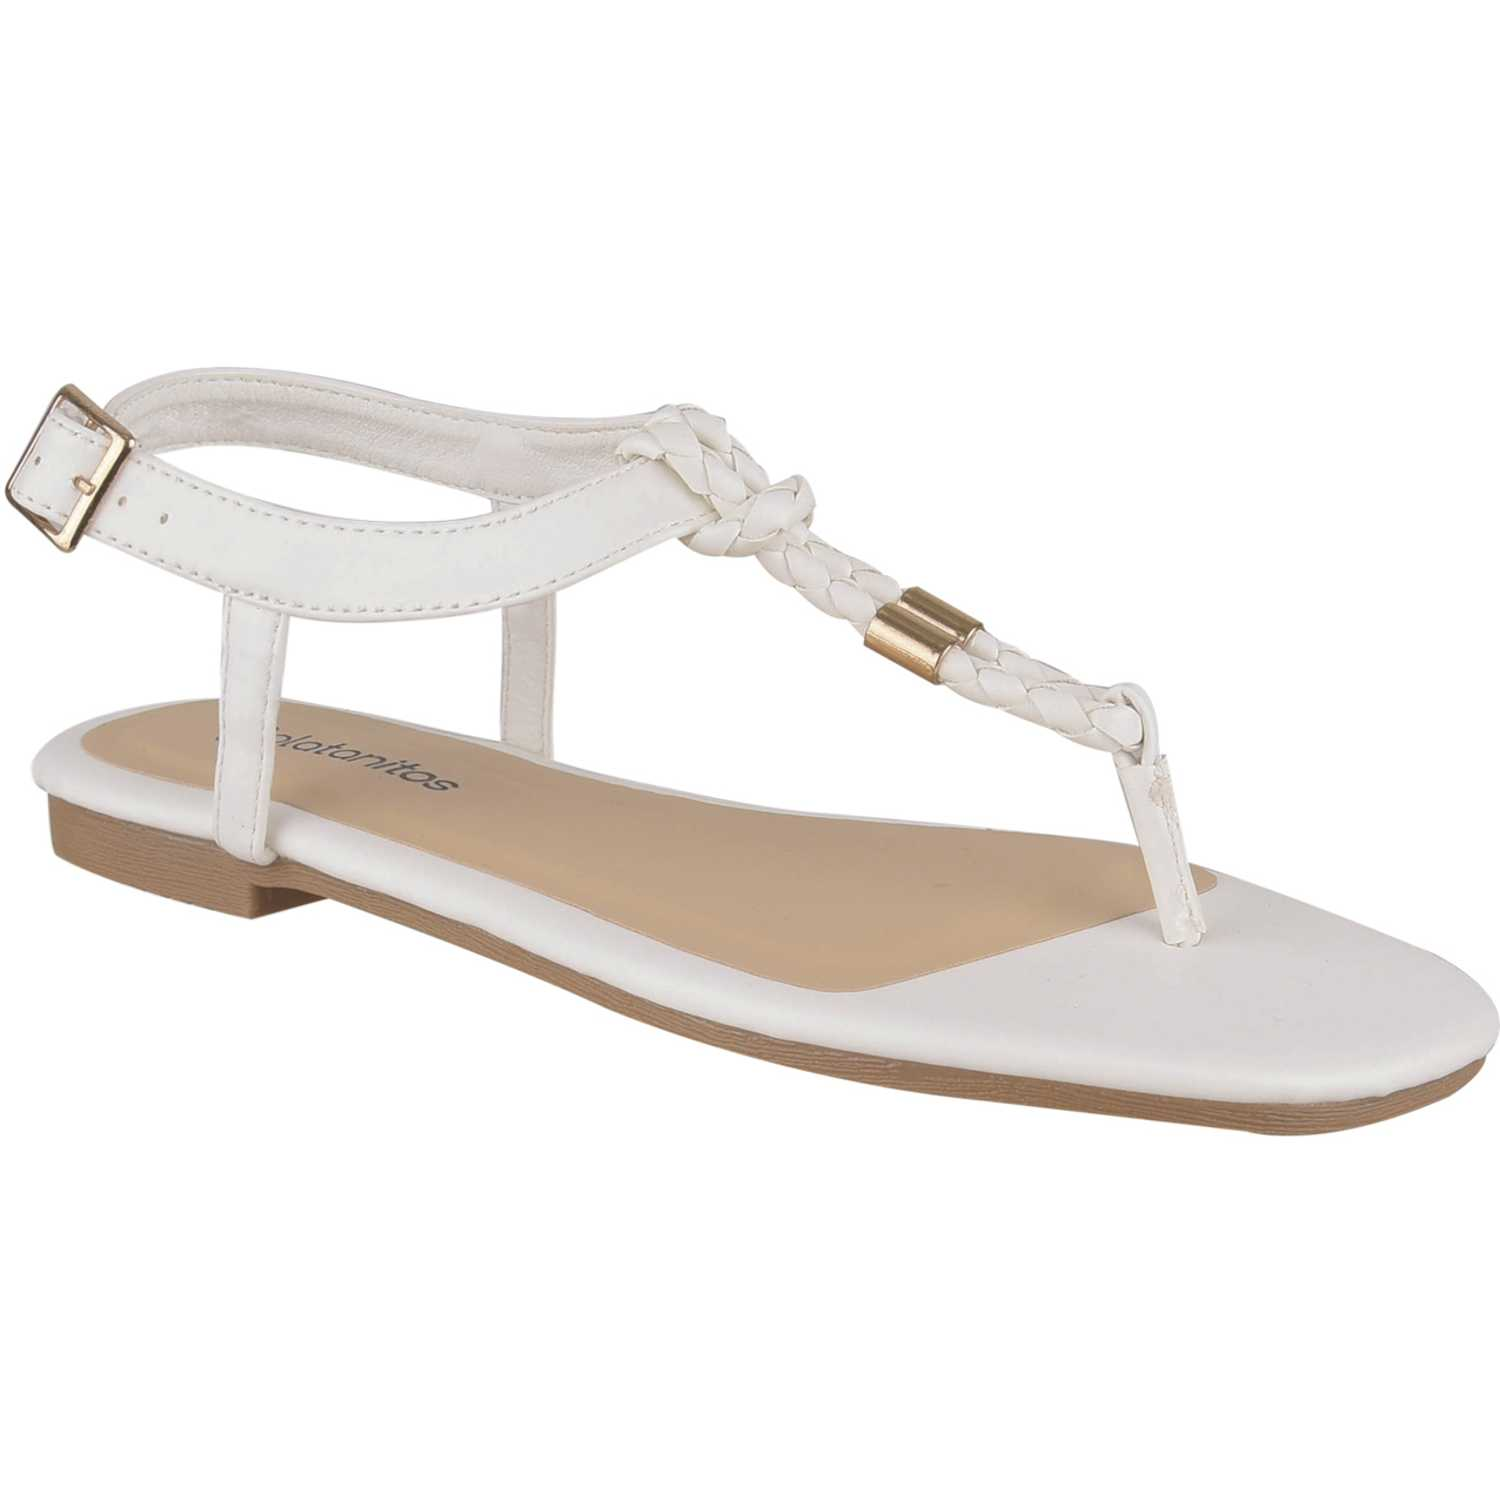 Platanitos sf 7138 Blanco Flats